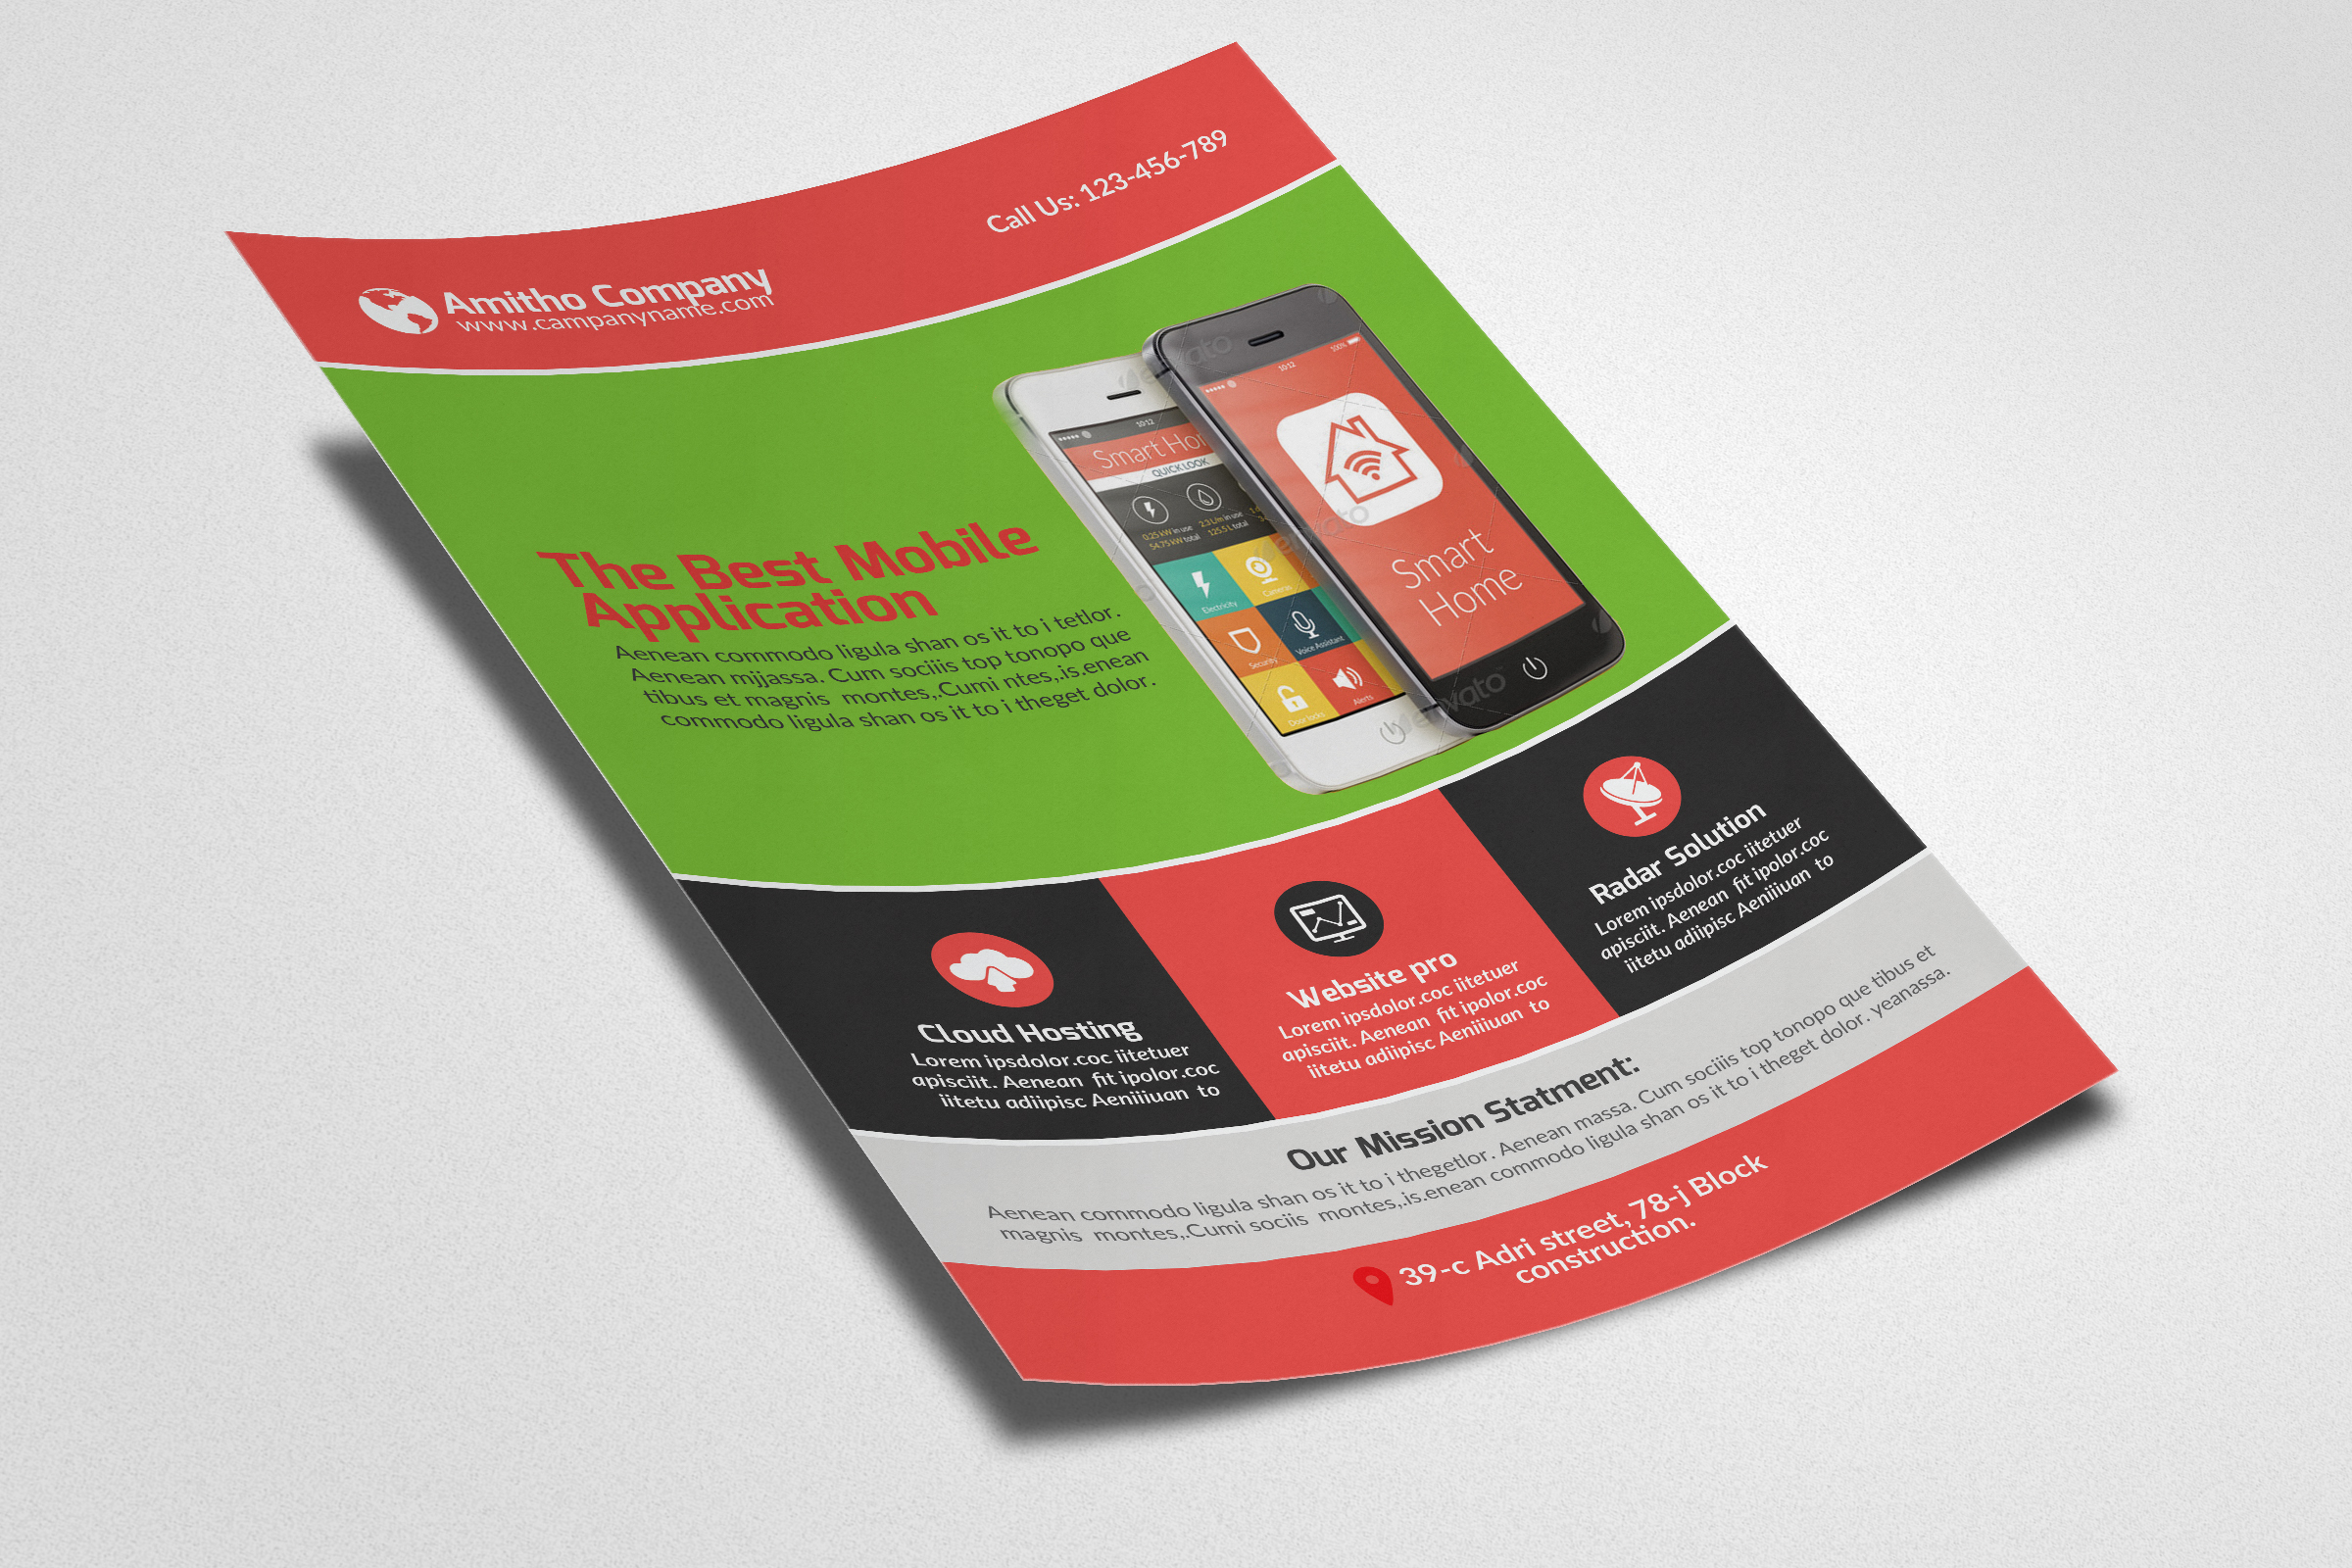 Mobile Apps Flyers example image 3